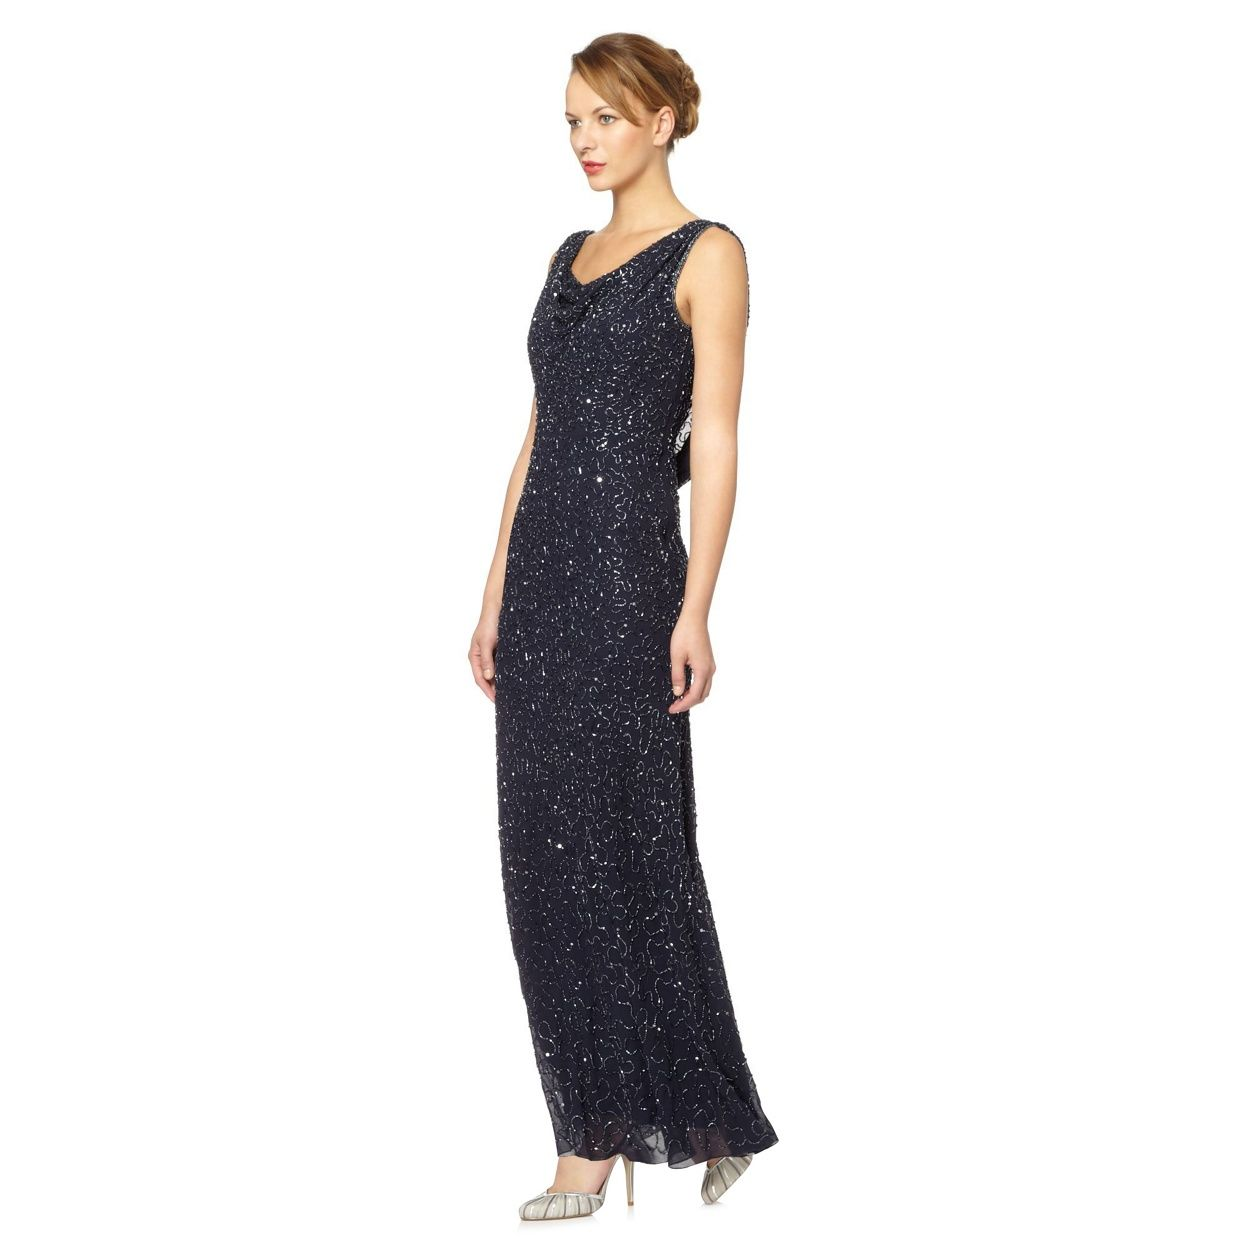 Debut navy embroidered cowl front maxi dress at debenhams debut navy embroidered cowl front maxi dress at debenhams debenhamswedding outfitscowlevening dressesbridesmaid ombrellifo Gallery